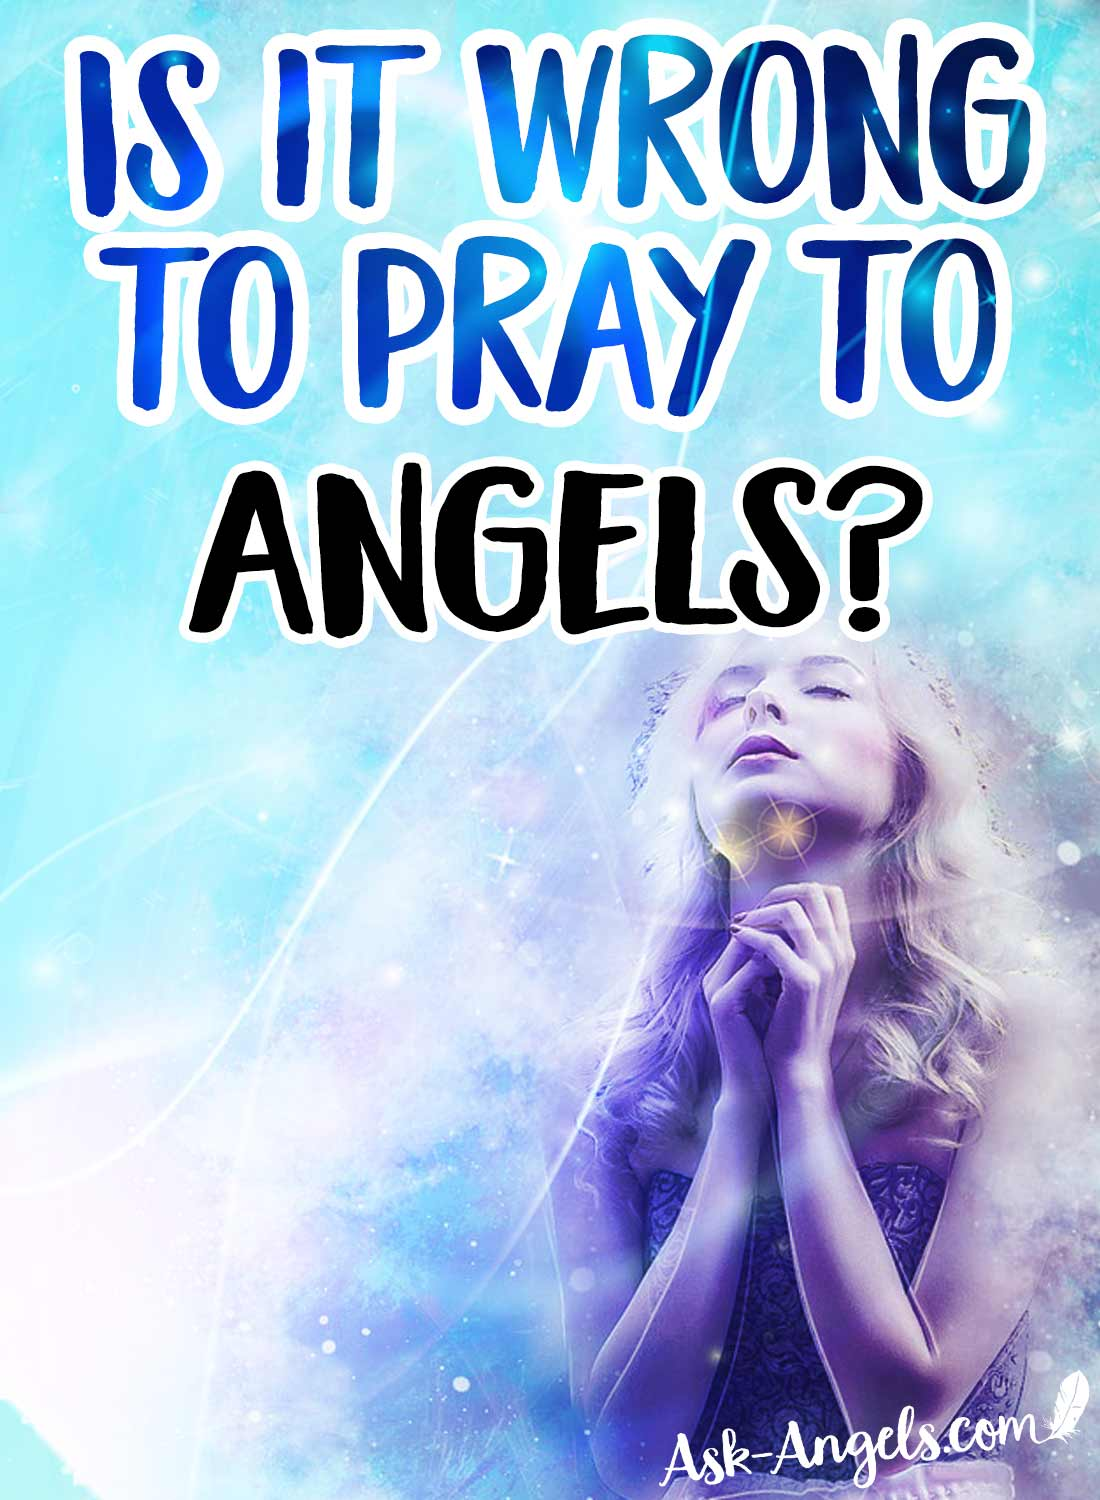 Is it wrong to pray to angels?